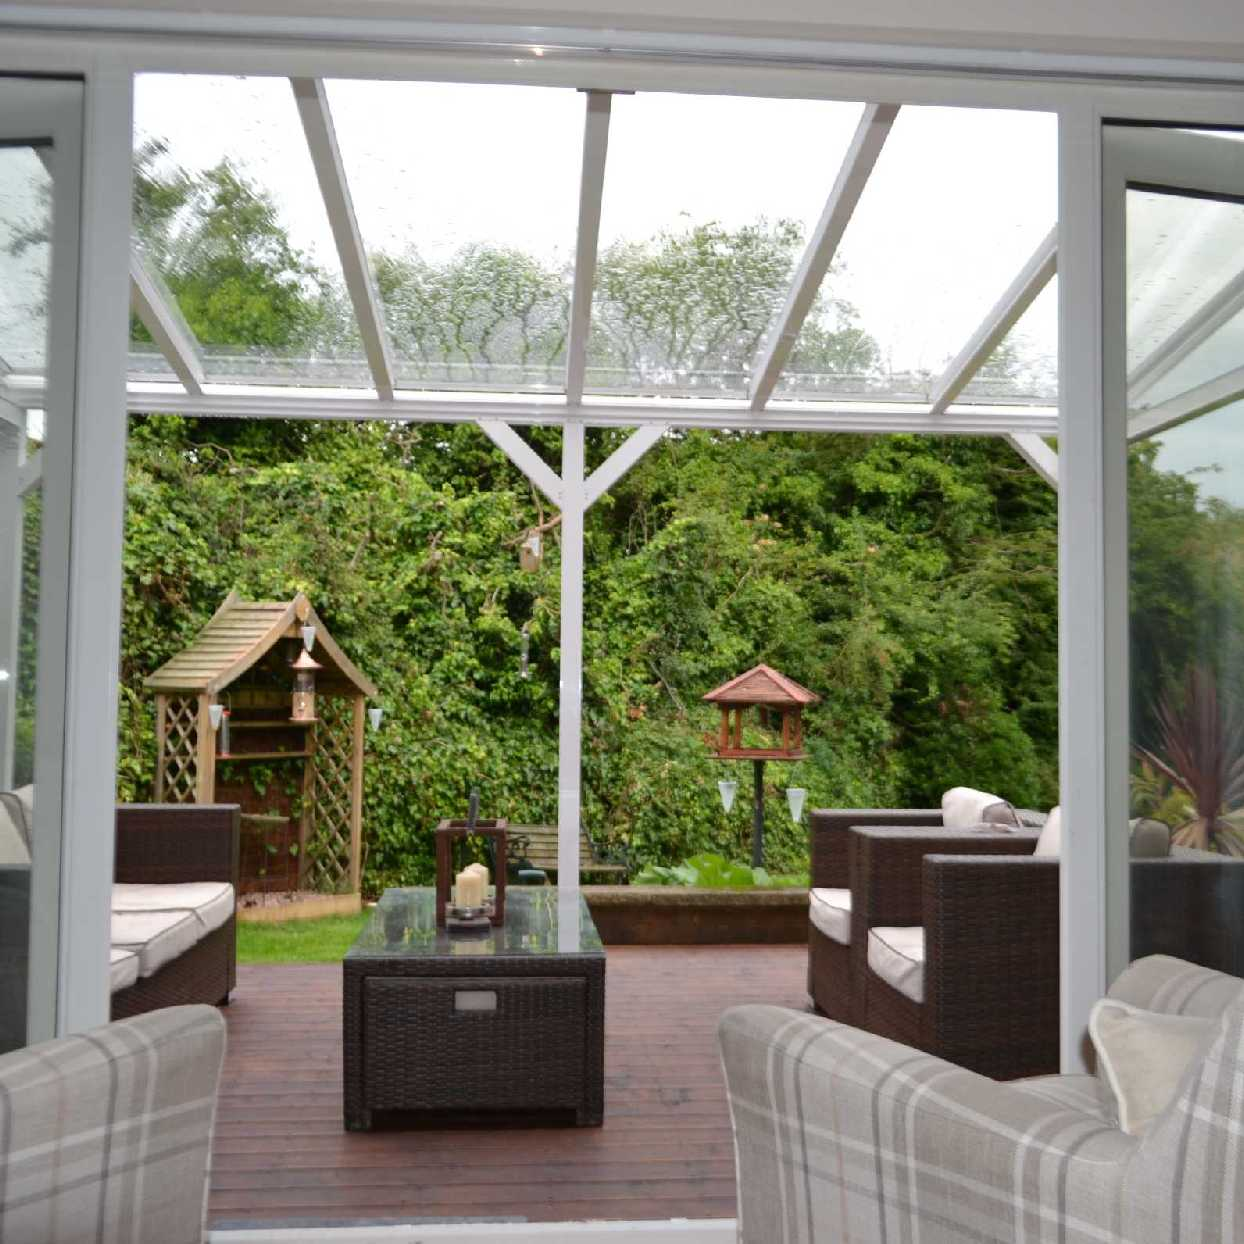 Great selection of Omega Smart Lean-To Canopy UNGLAZED for 6mm Glazing - 8.4m (W) x 3.0m (P), (4) Supporting Posts